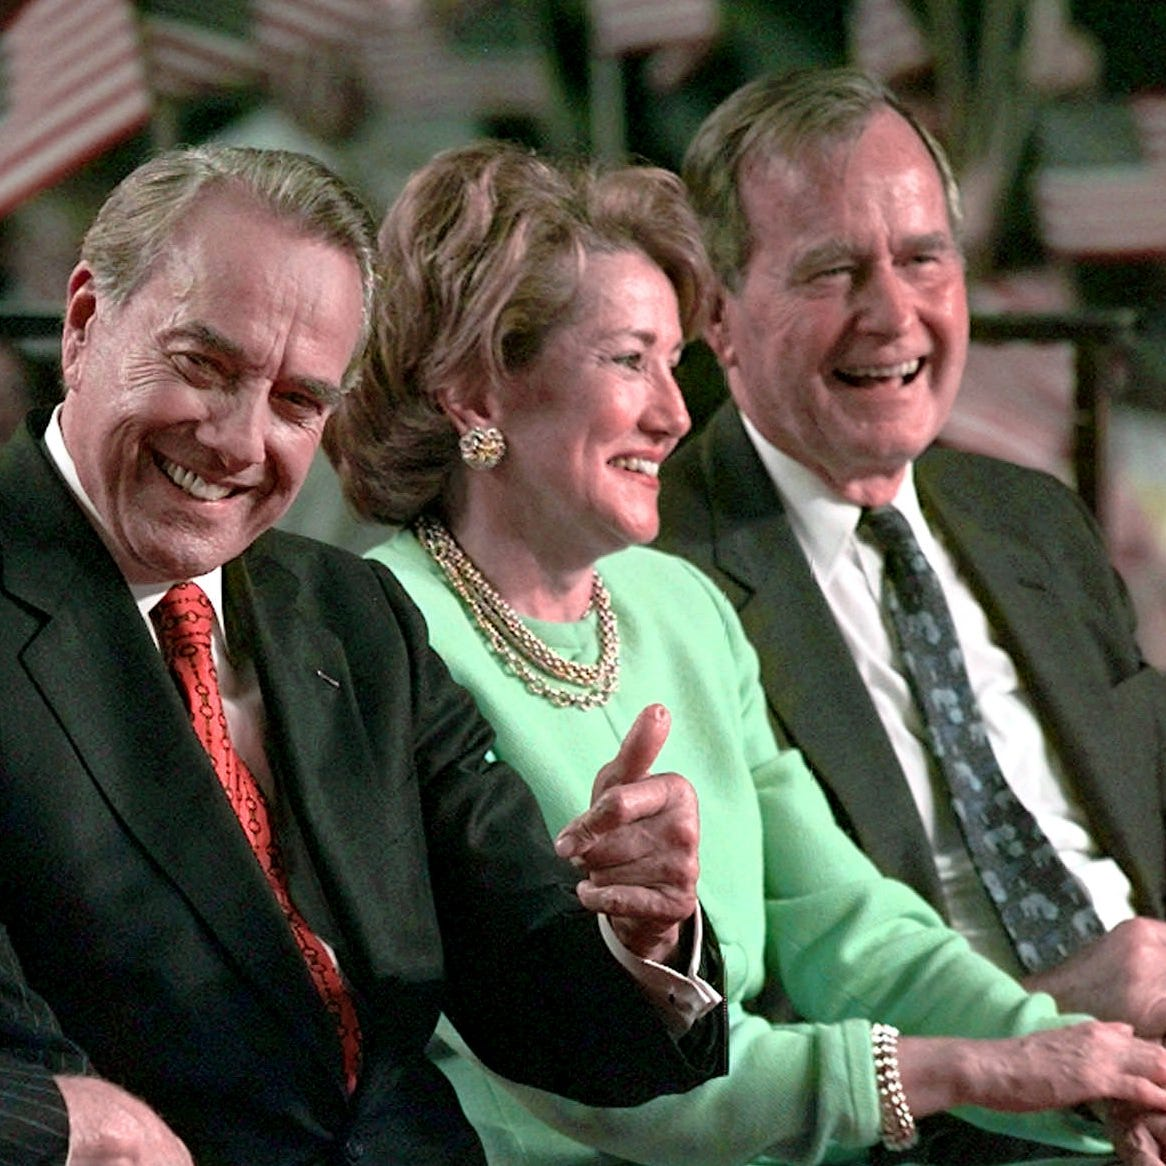 Bob and Elizabeth Dole: Remembering legacy of George H.W. Bush and the Greatest Generation